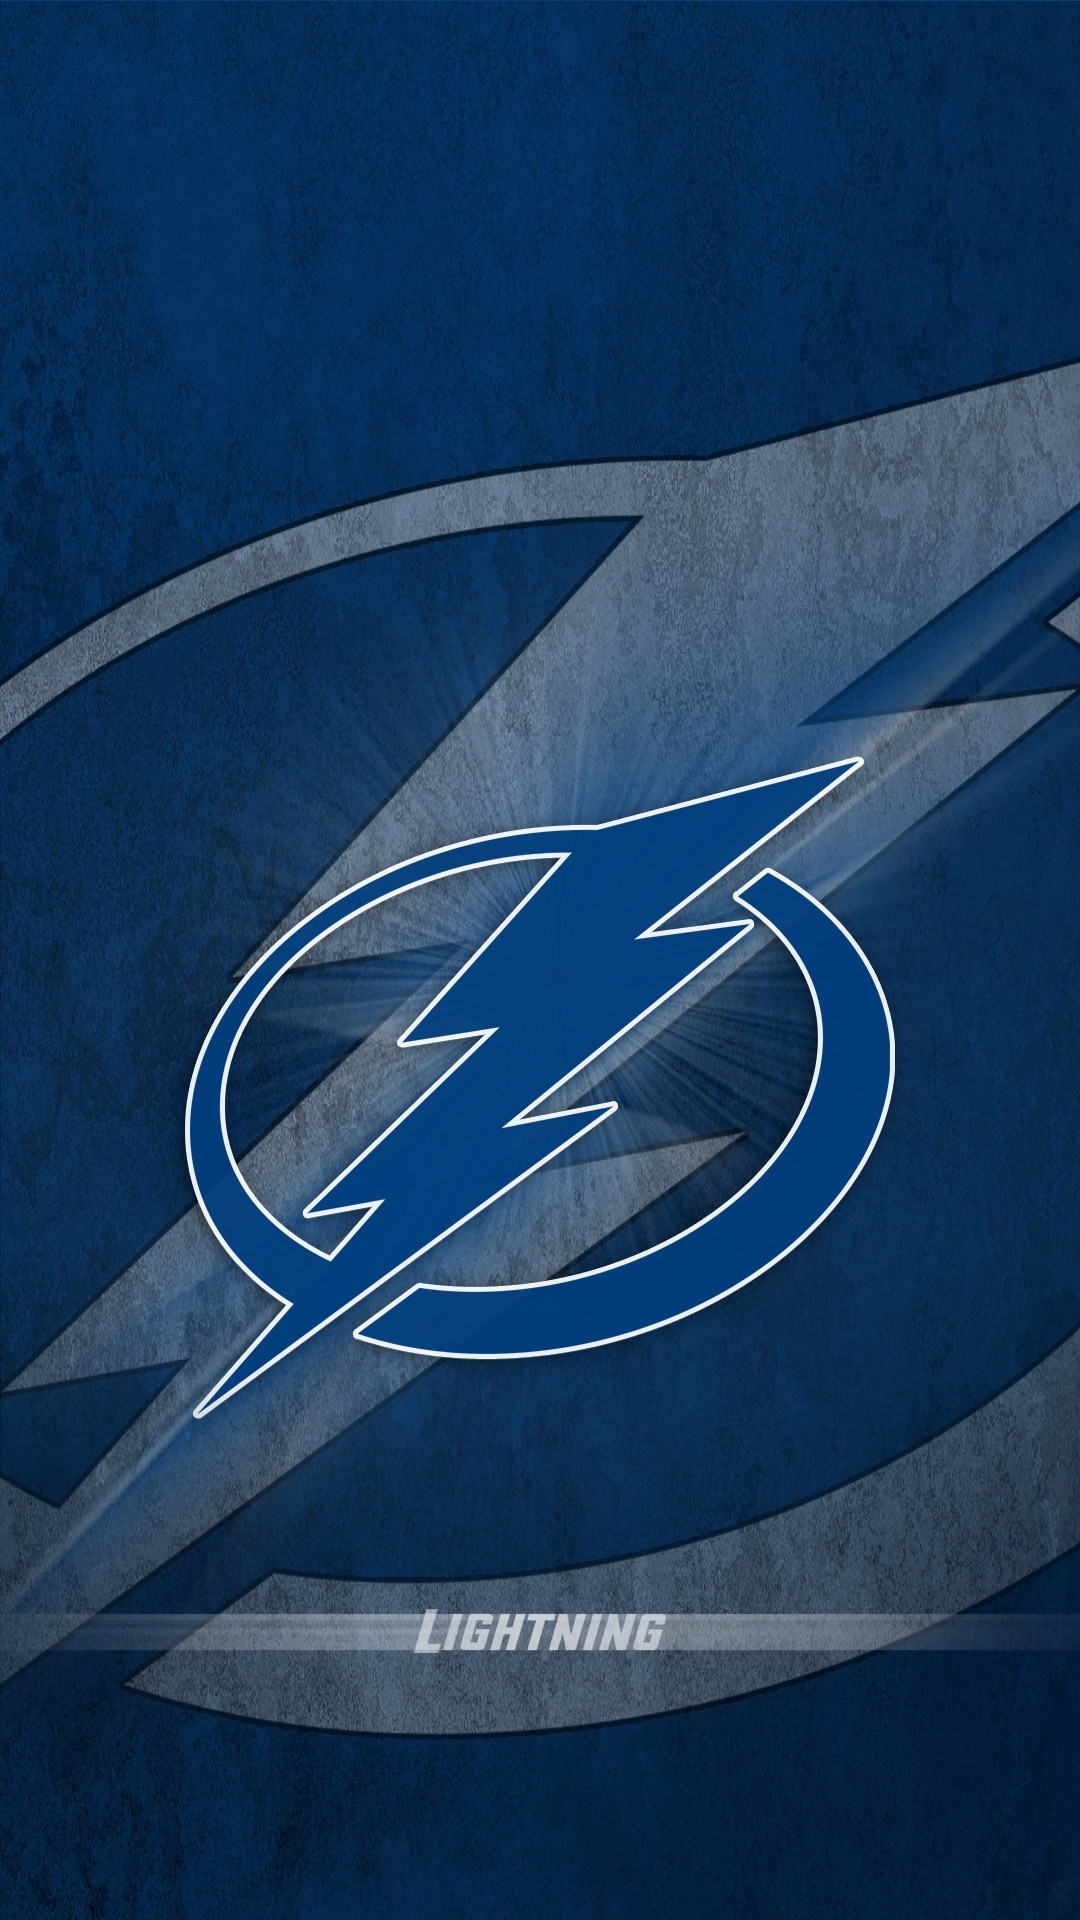 tampa bay lightning iphone wallpaper (57+ images)